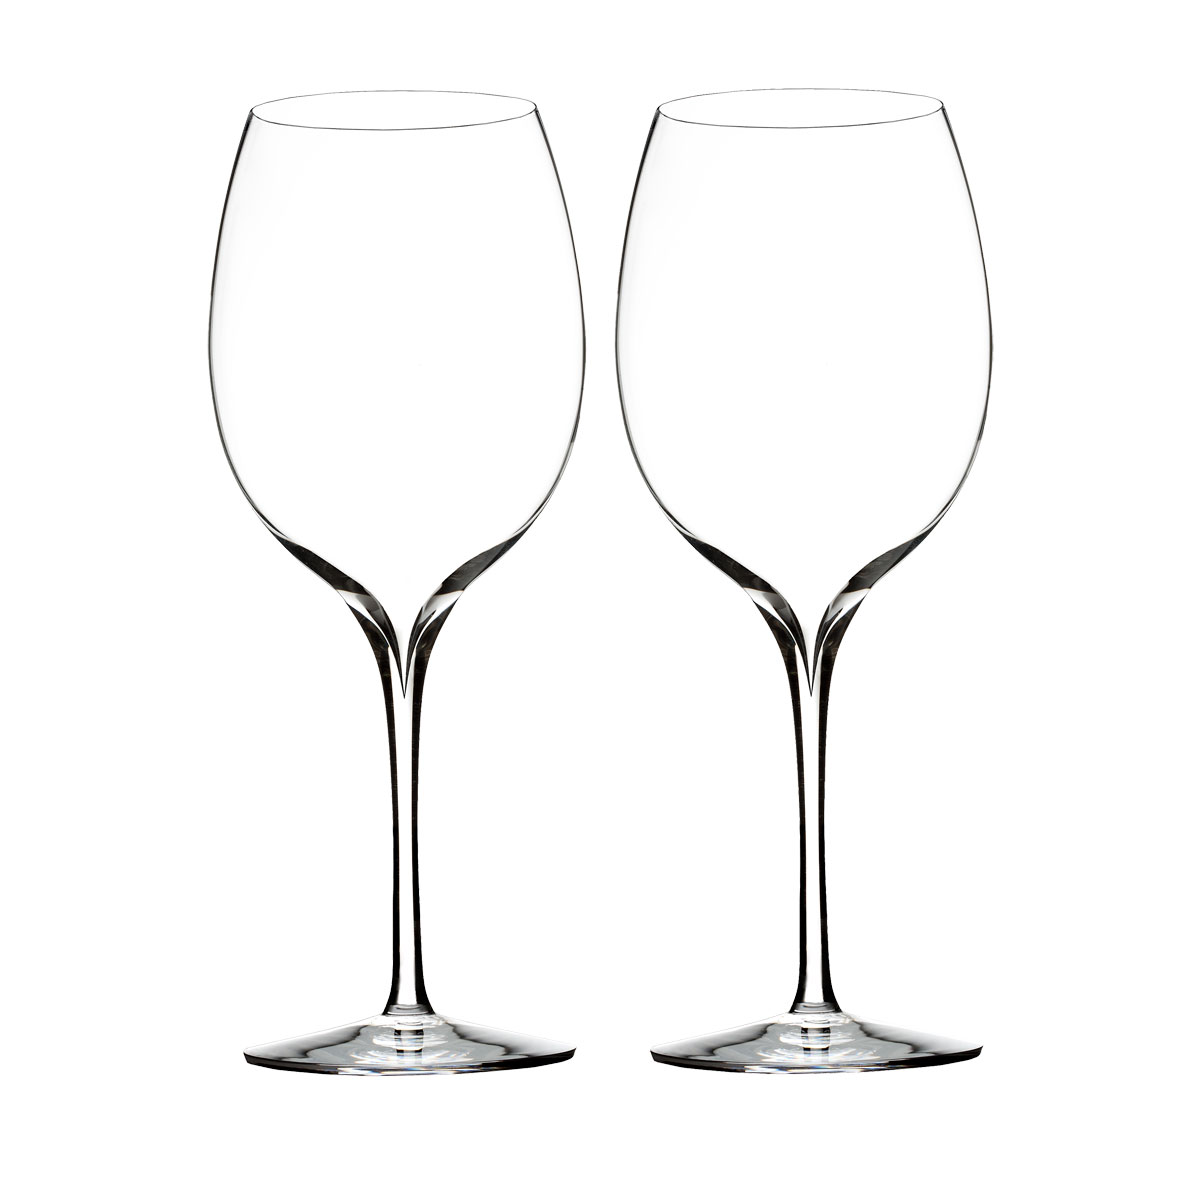 Waterford Crystal, Elegance Pinot Grigio Crystal Wine Glasses, Pair